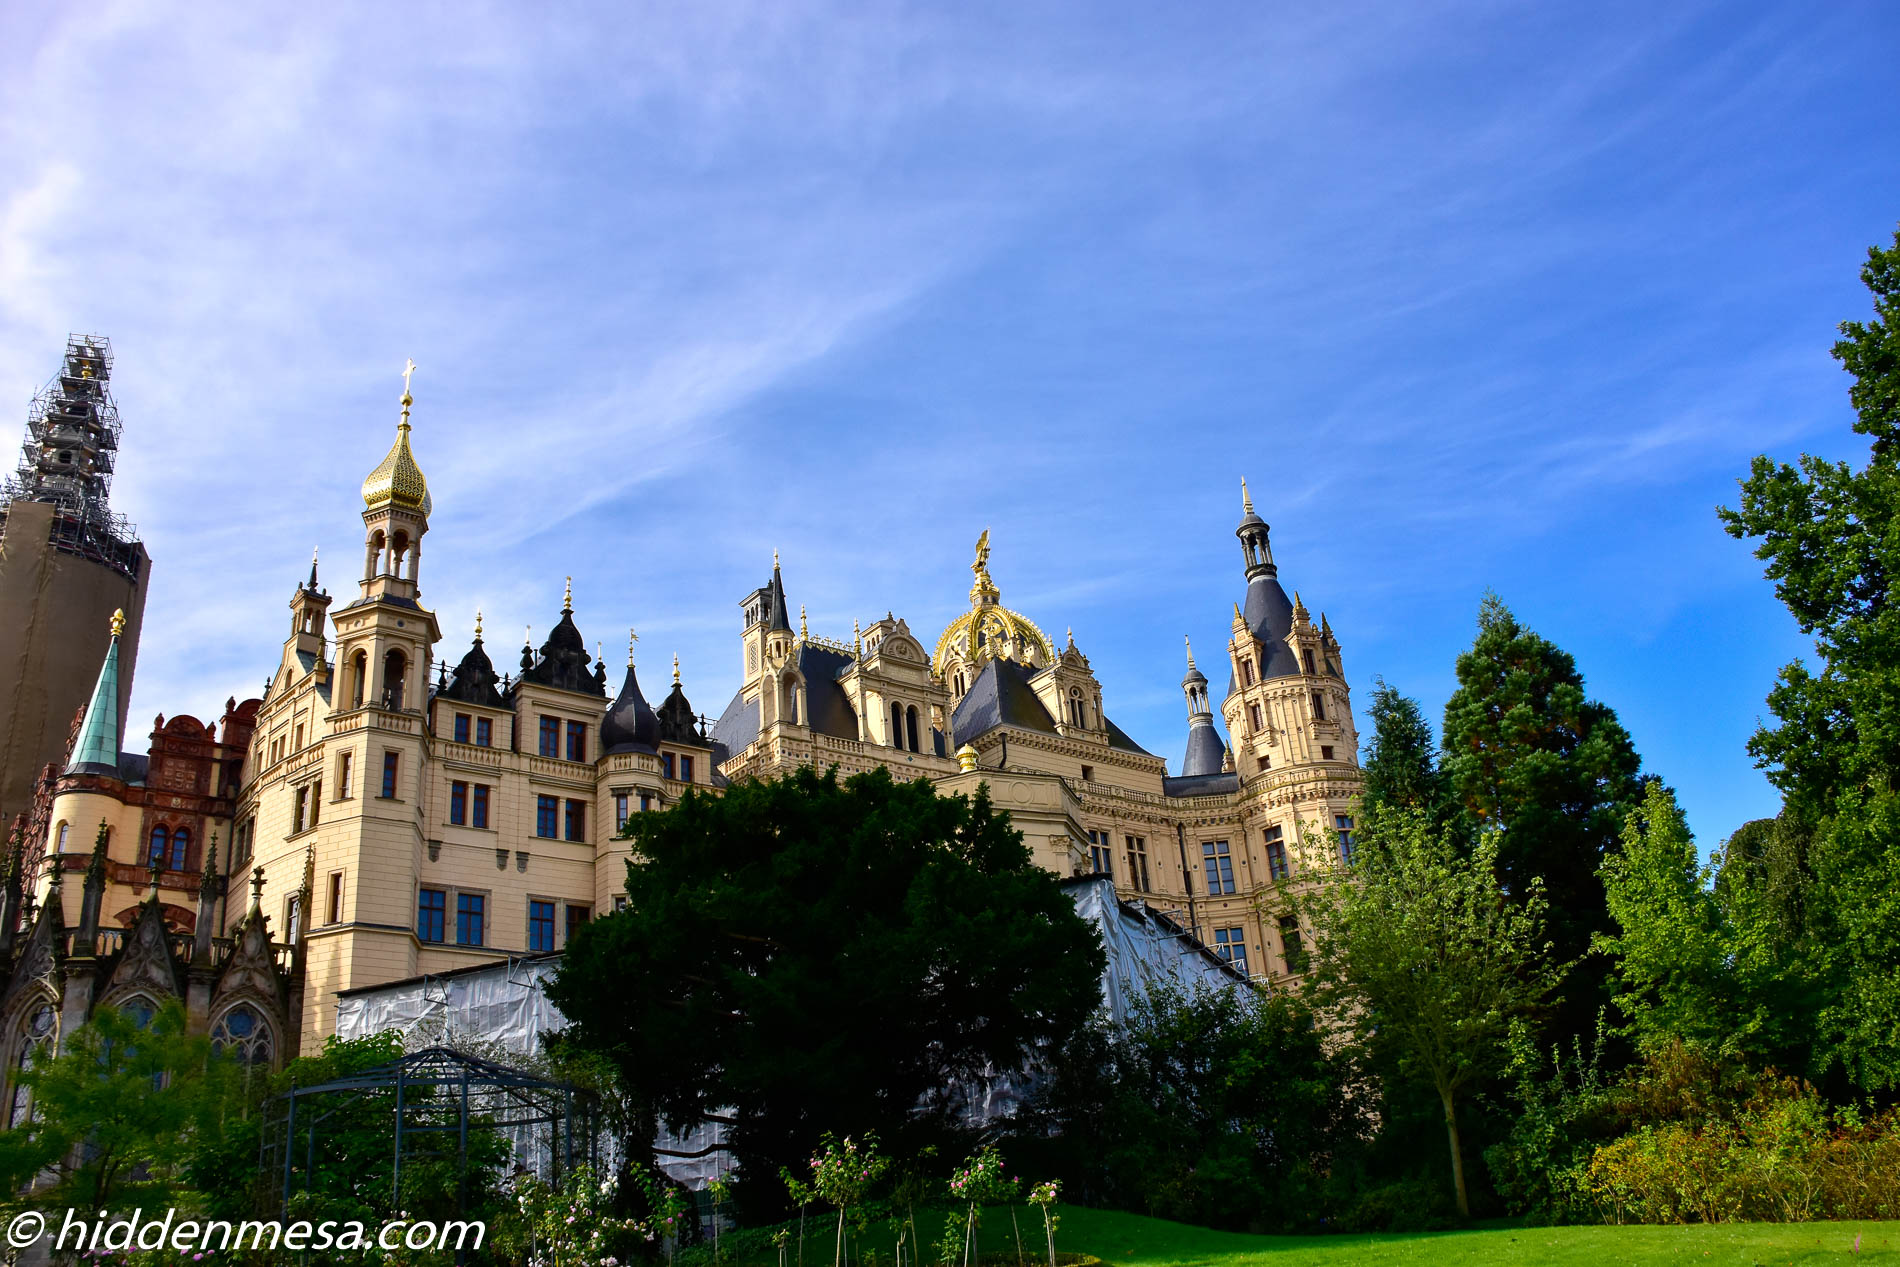 Schwerin Palace and the Golden Dome.